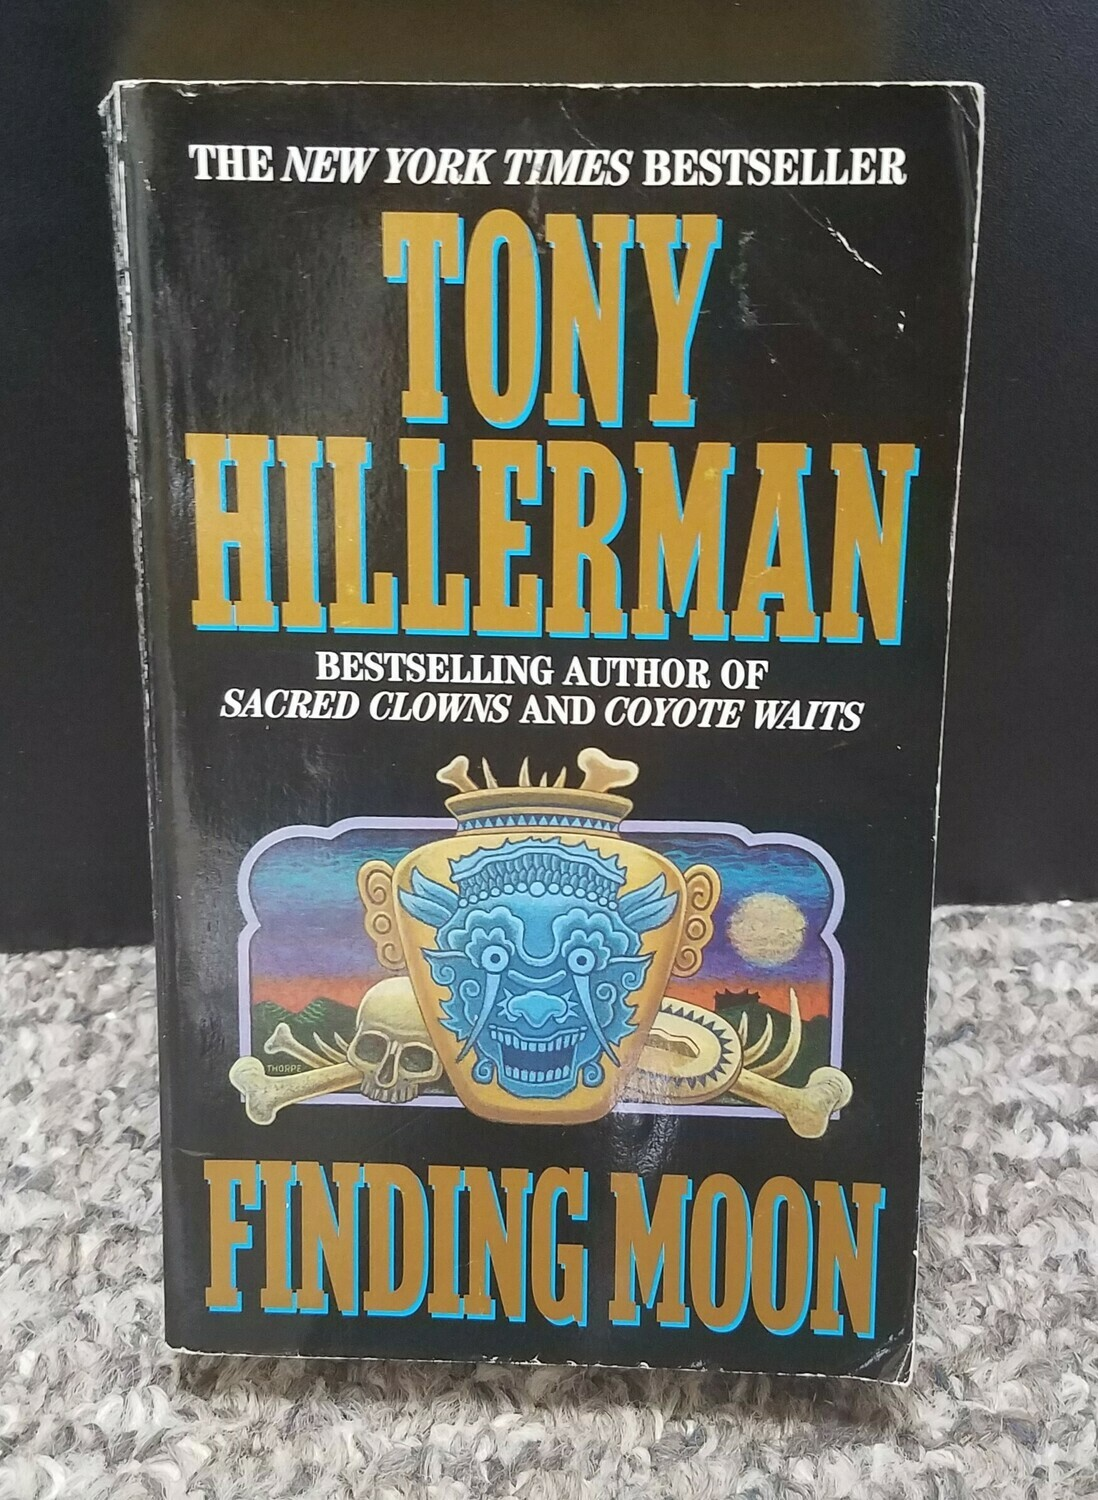 Finding Moon by Tony Hillerman